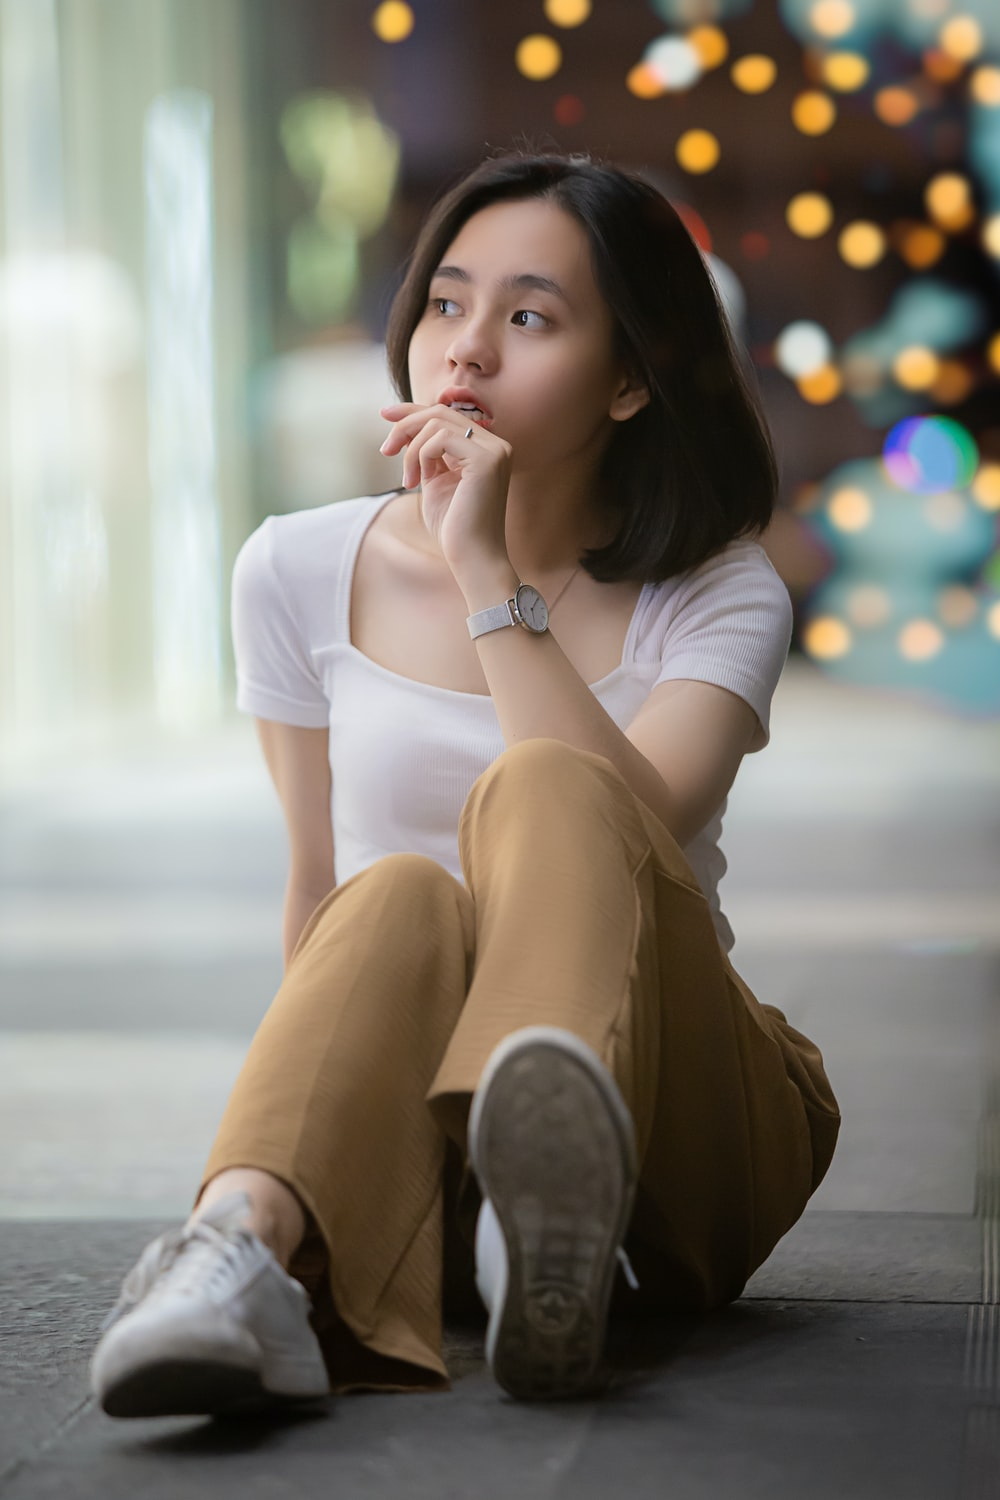 woman in white shirt and brown skirt sitting on floor